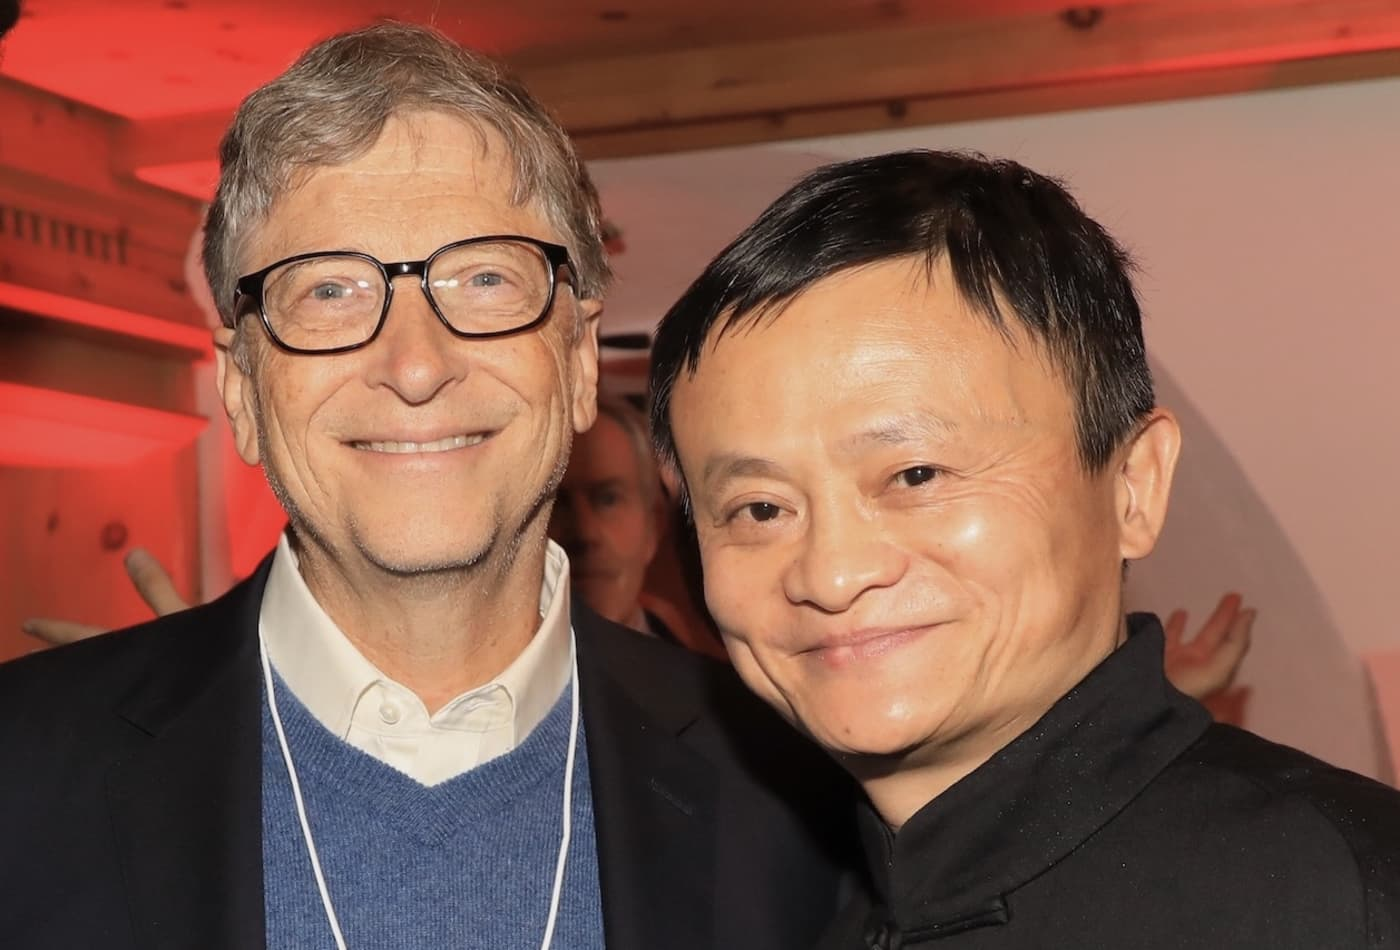 Alibaba's Jack Ma: I will do this one thing better than Bill Gates